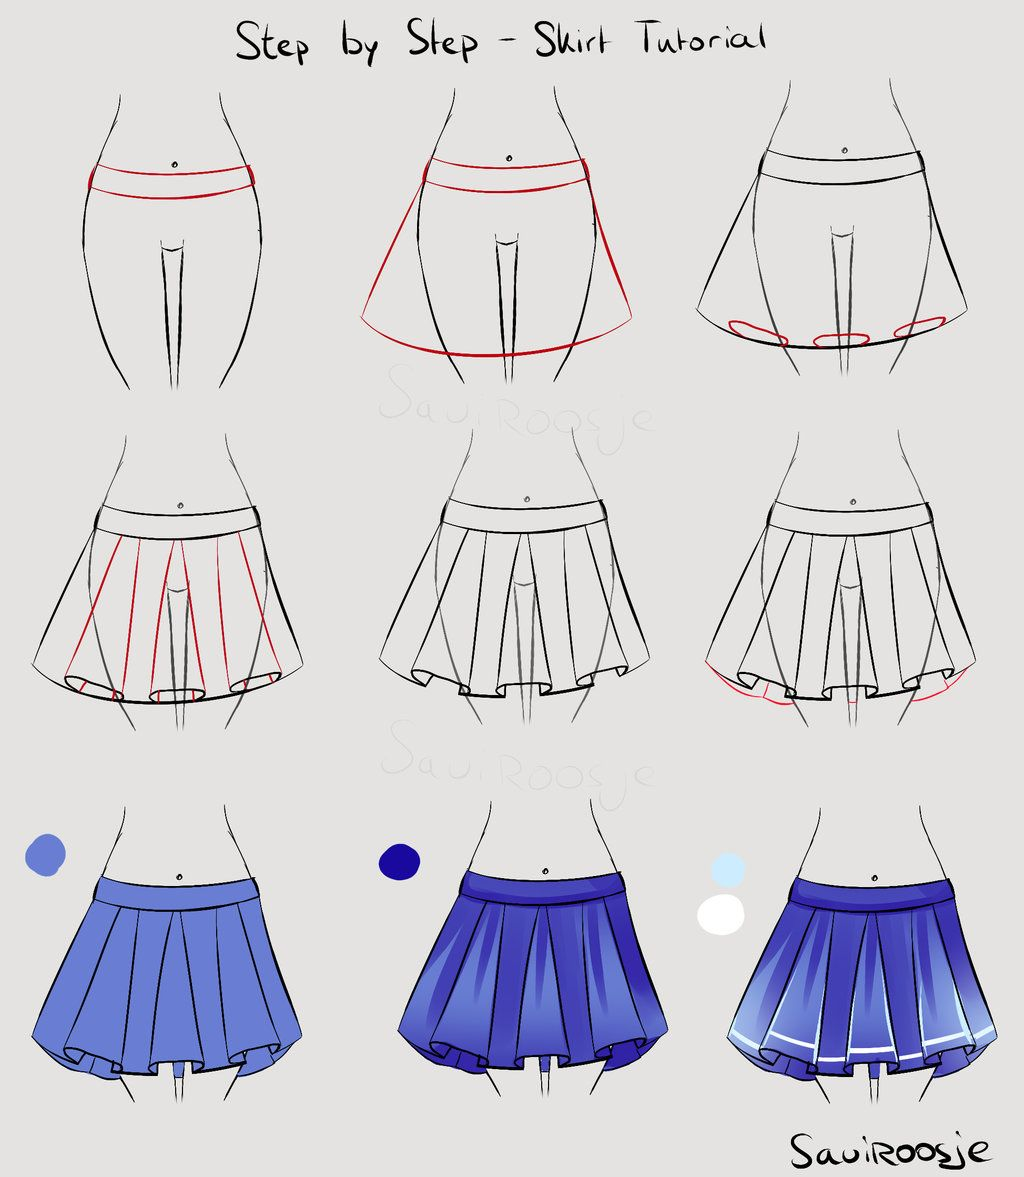 403 Forbidden How To Draw Skirt Fashion Drawing Fashion Drawing Tutorial